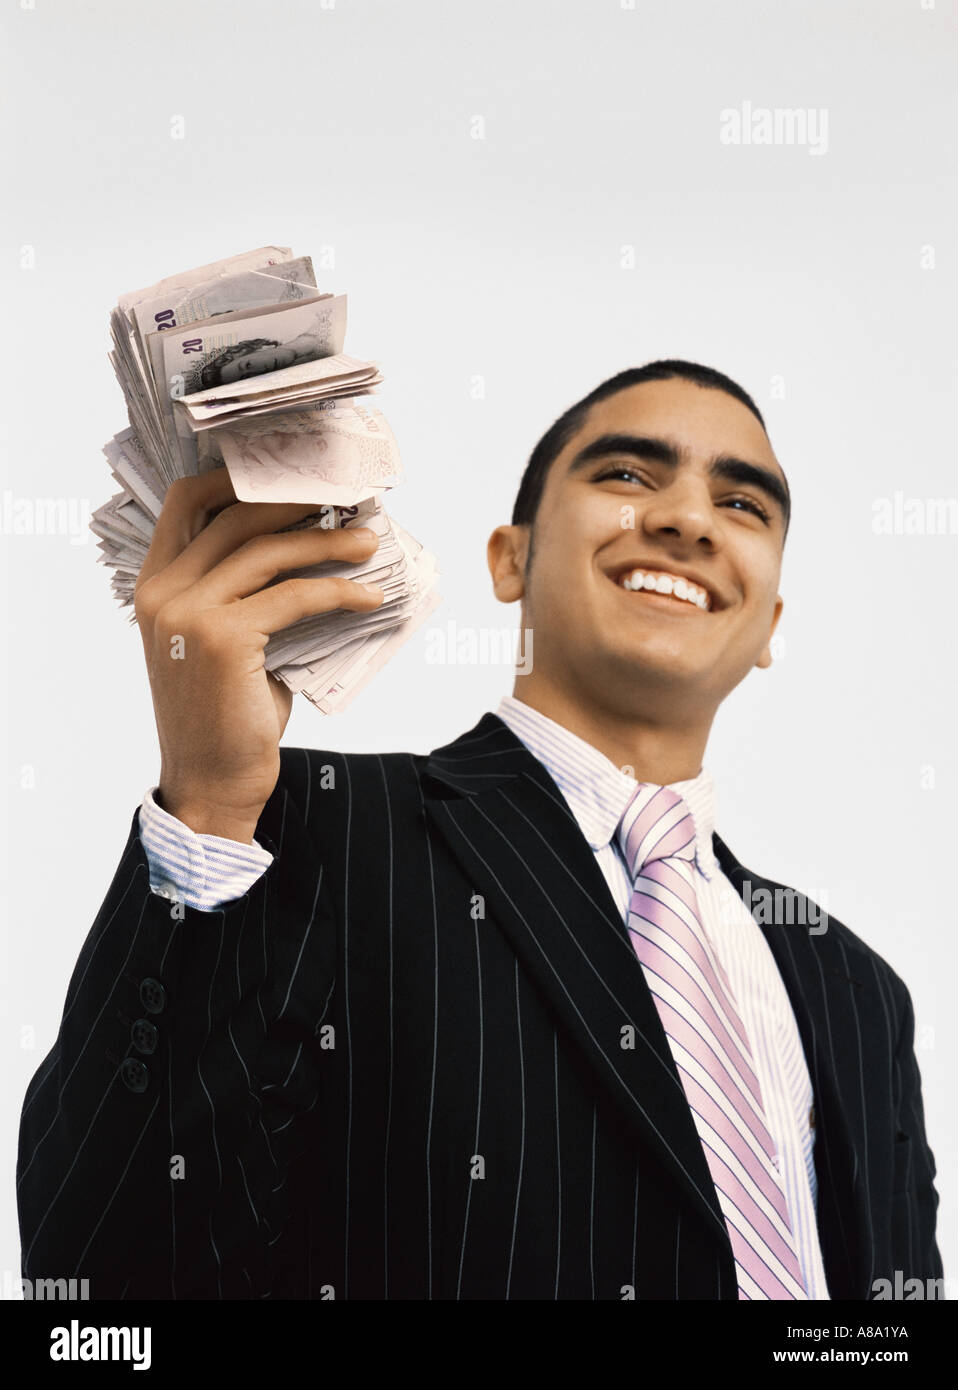 Businessman with wad of cash - Stock Image